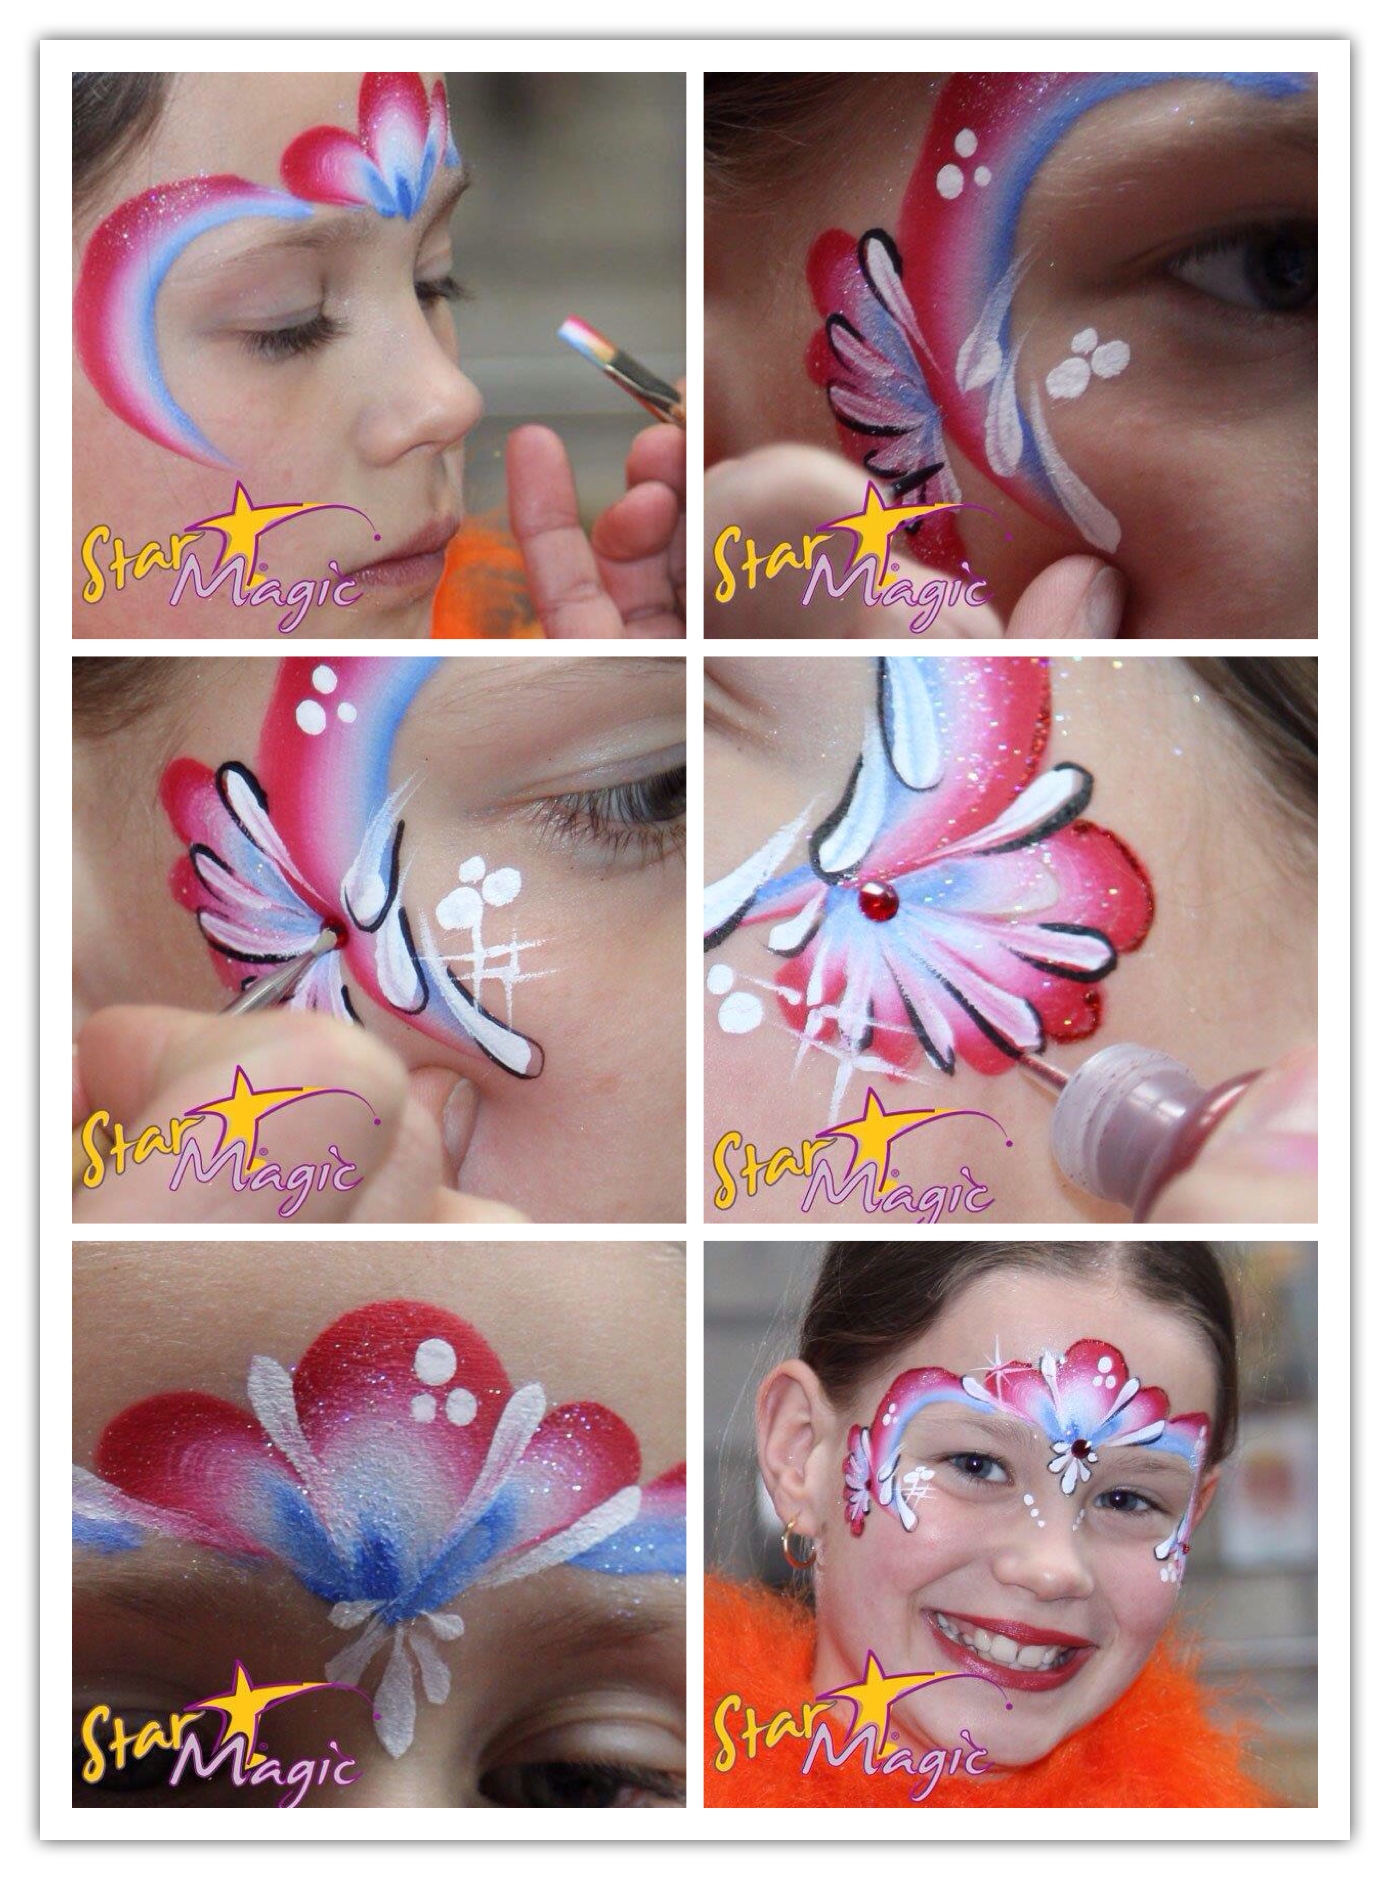 Verwonderlijk 110 Best Face Painting 4th of July images in 2020 | Face painting RI-26